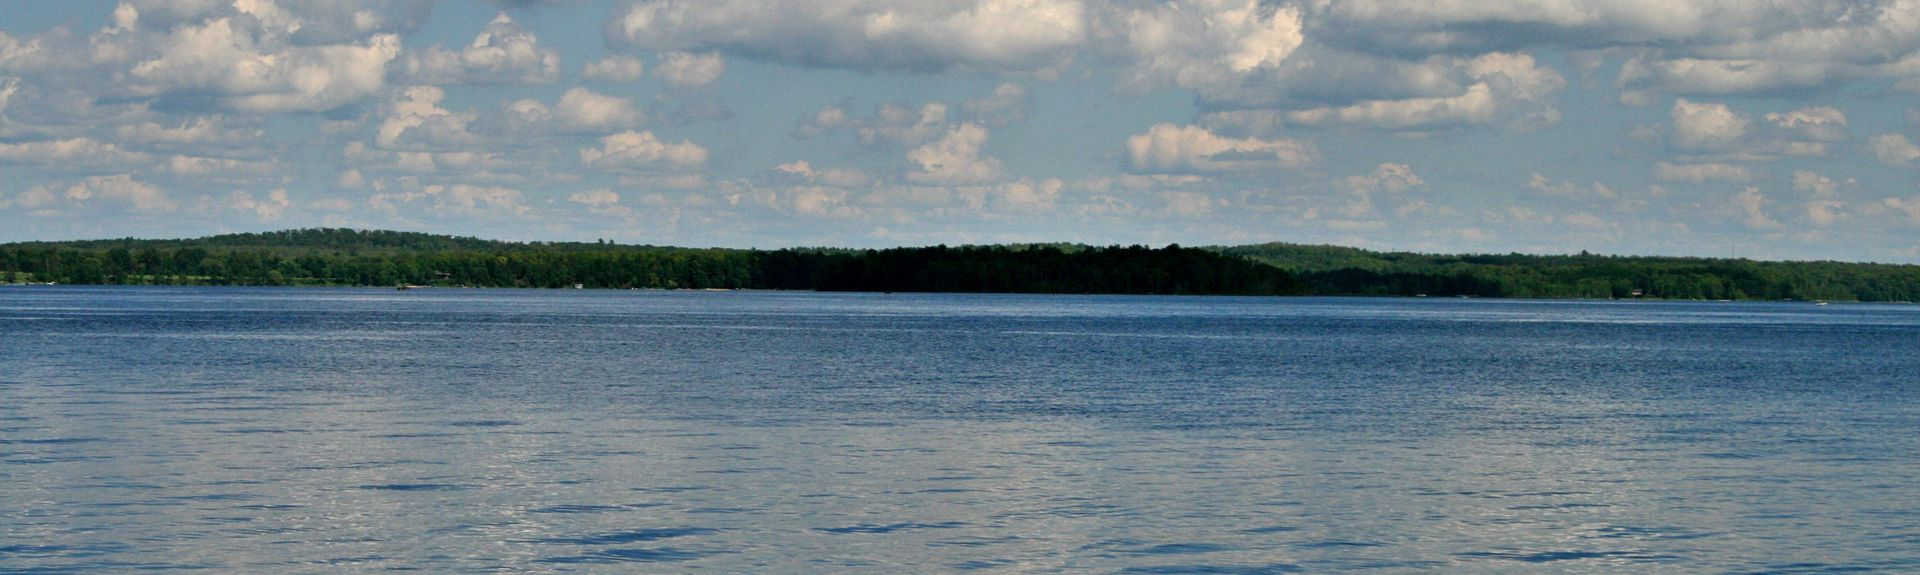 Pokegama Lake, MN, USA